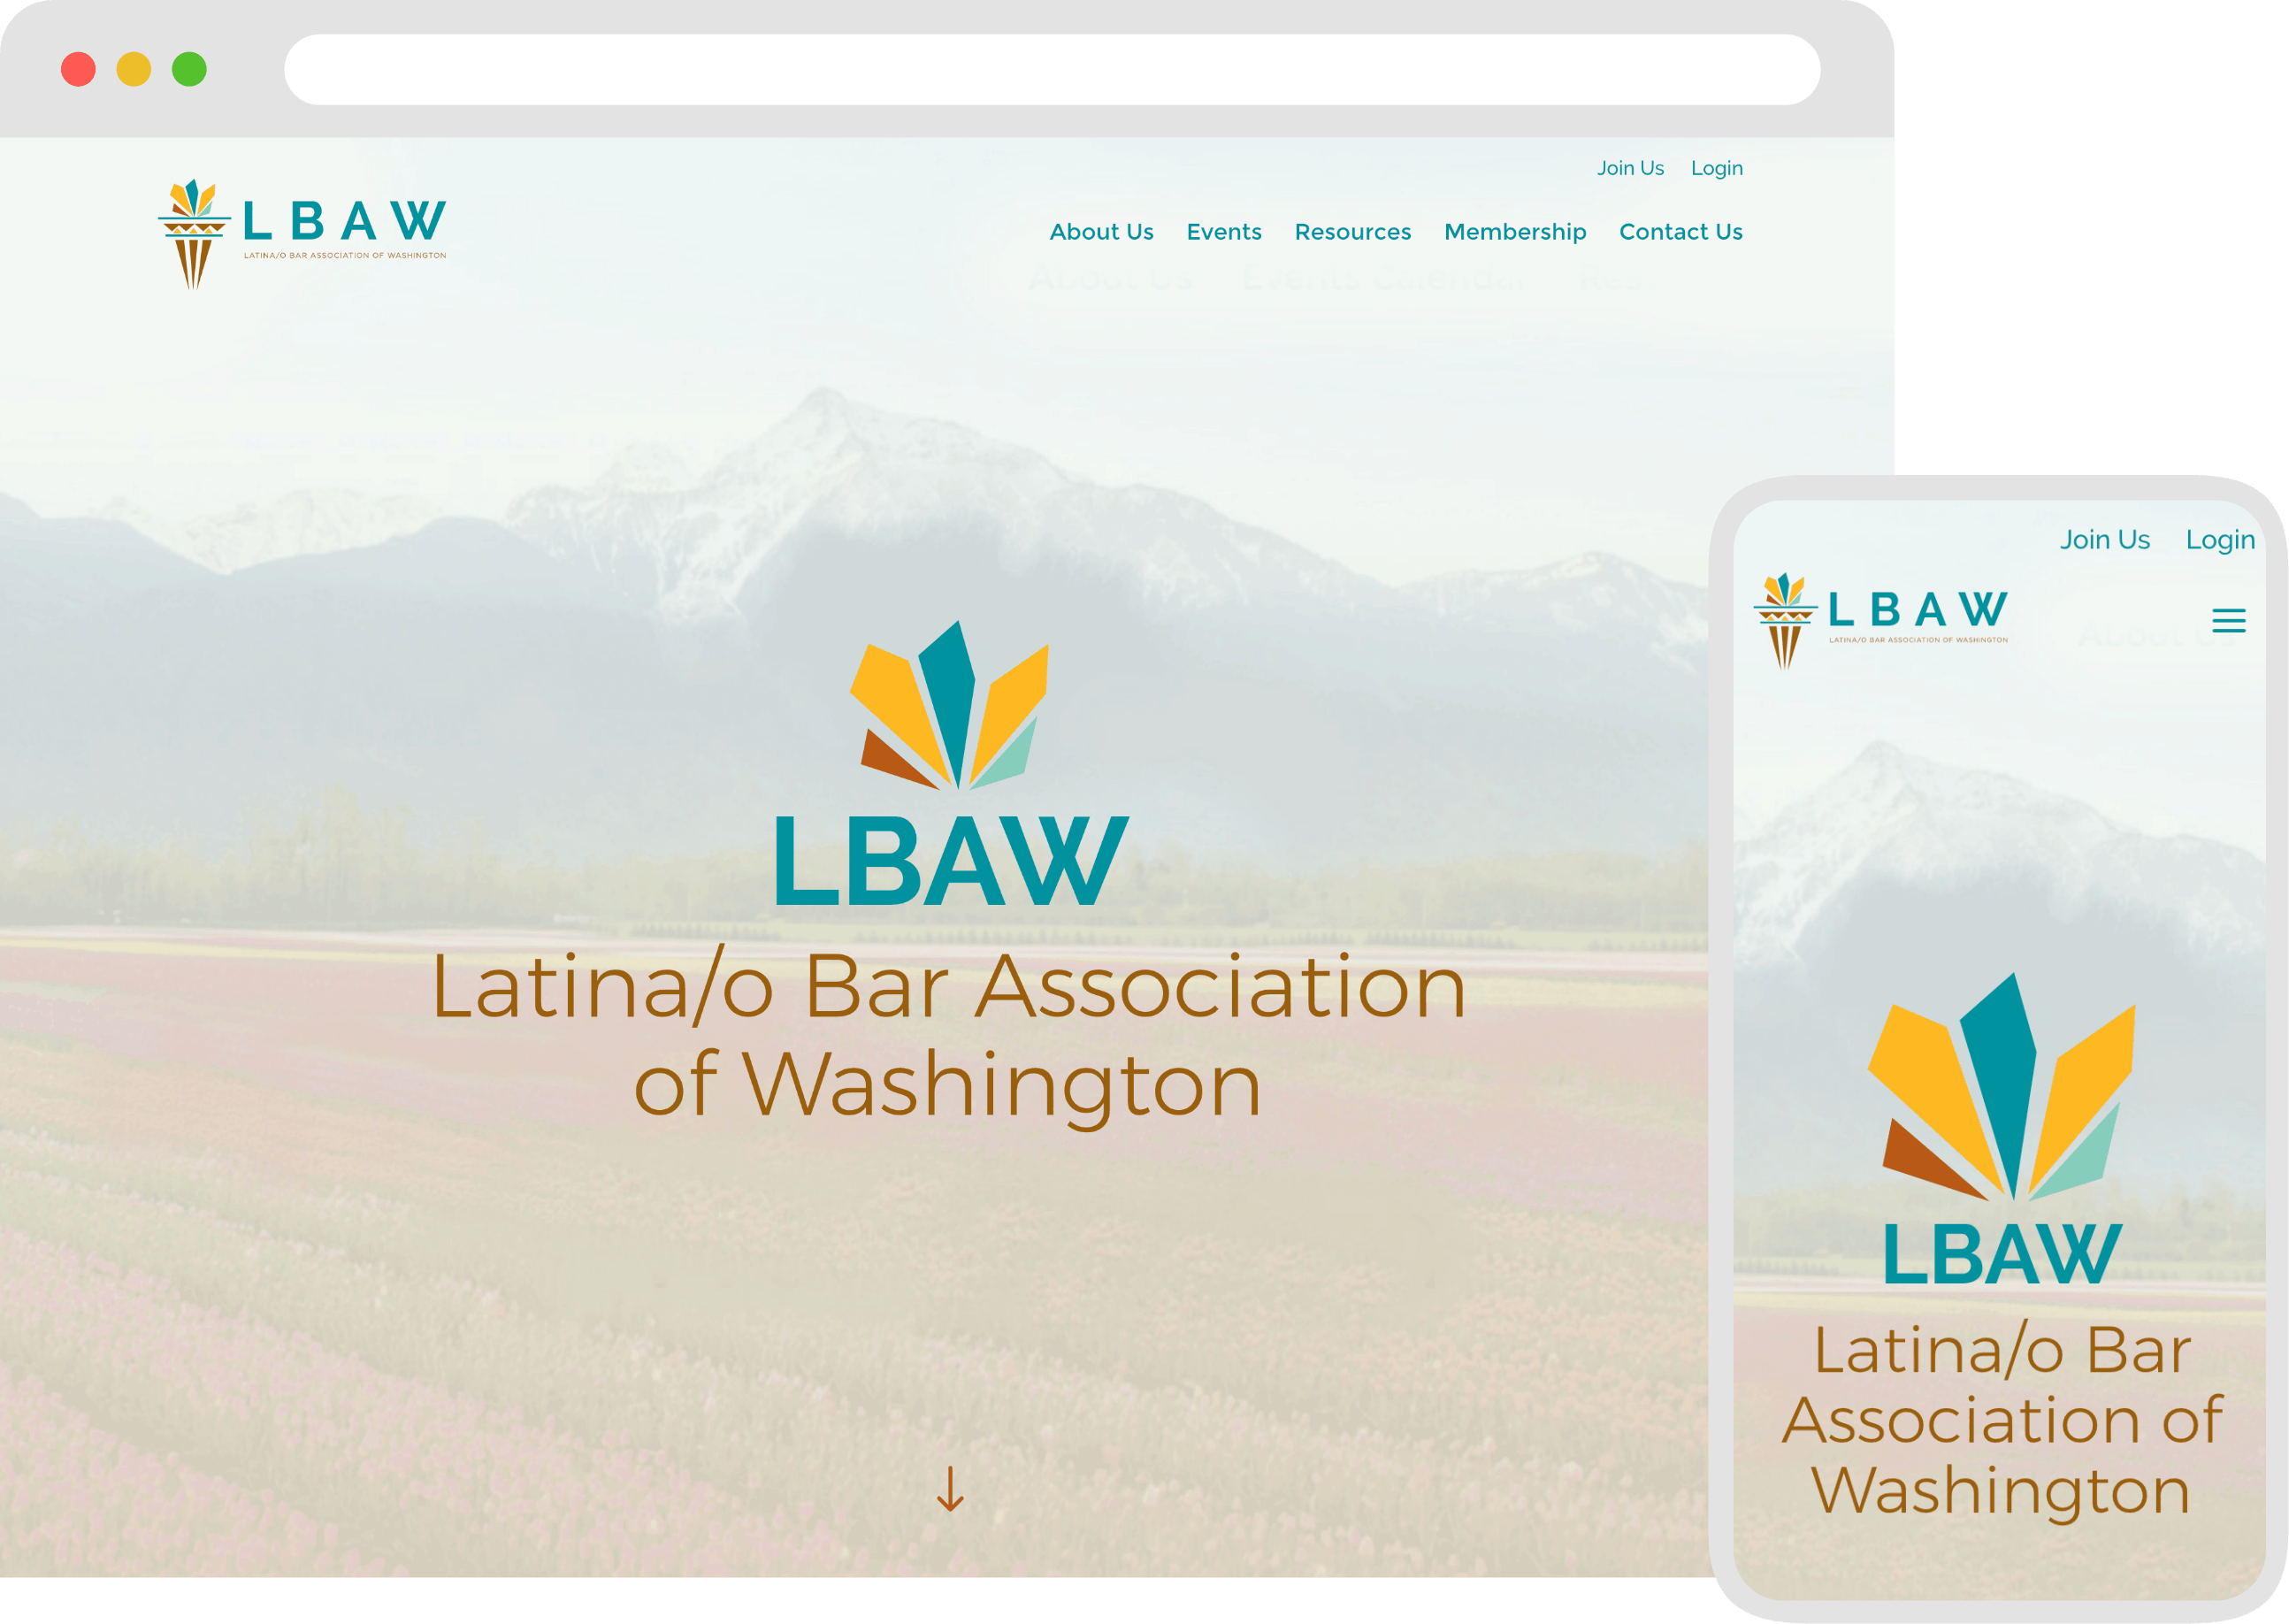 LBAW Image Top